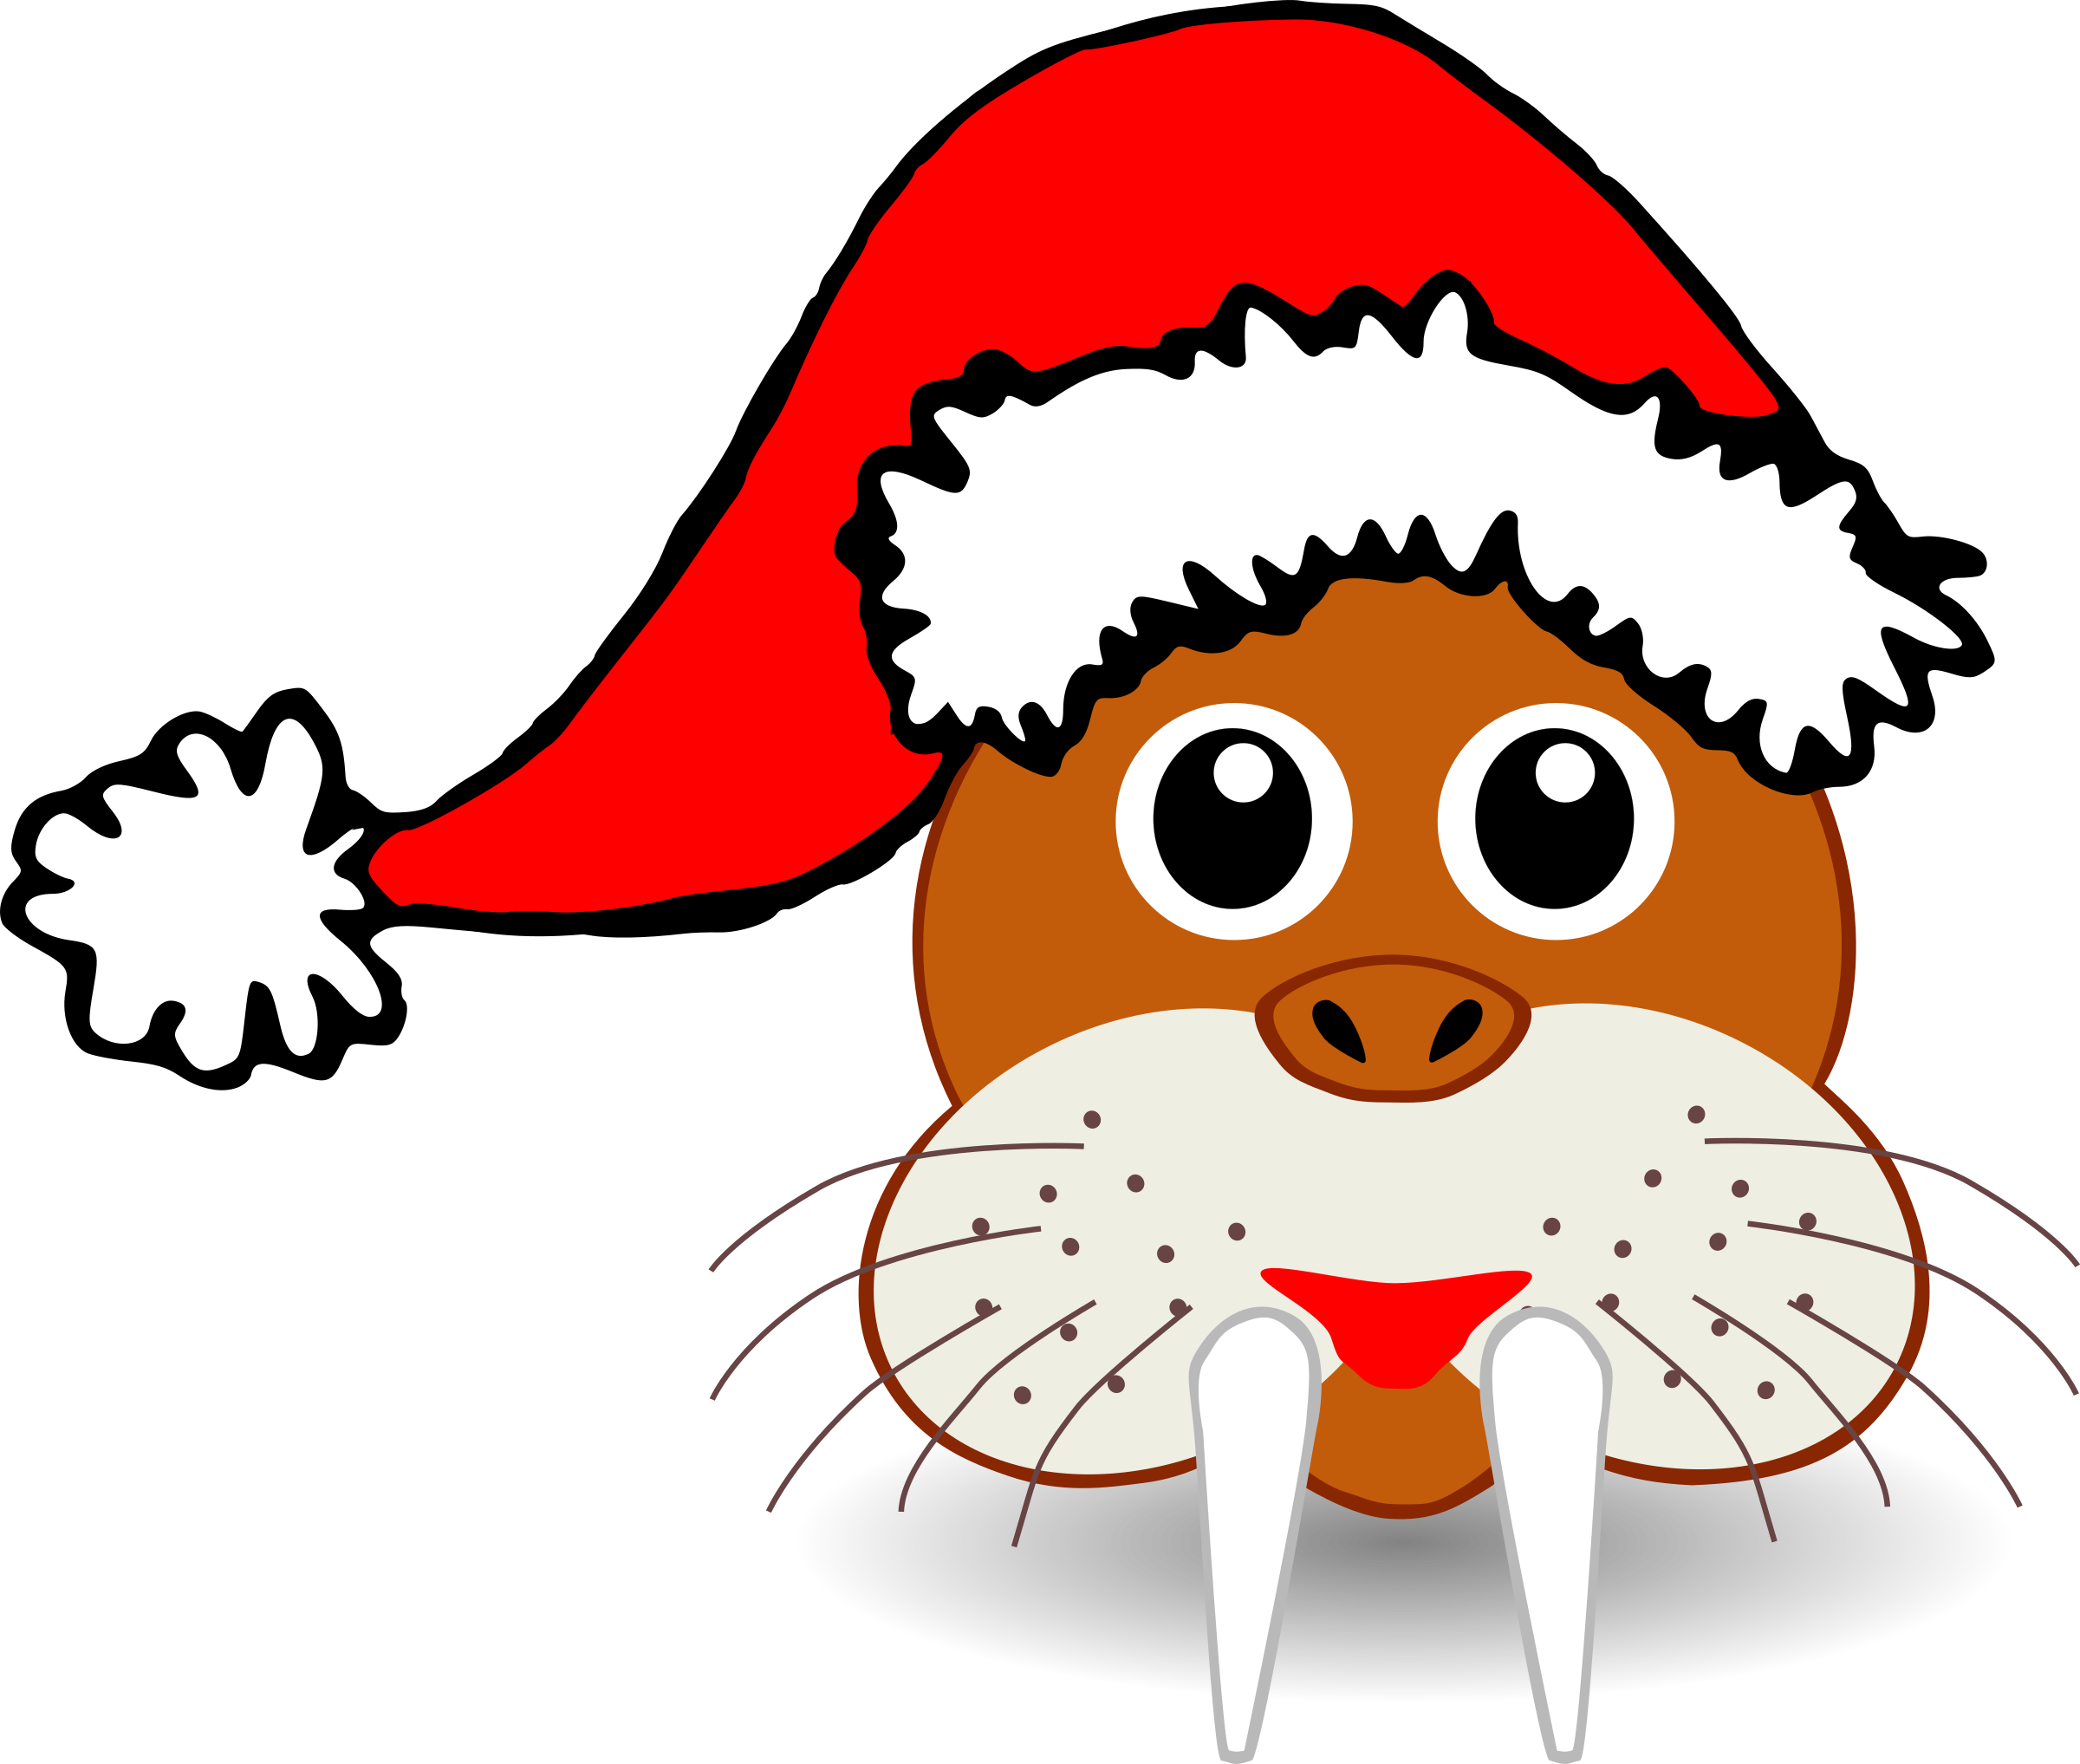 Funny walrus face with Santa Claus hat by palomaironique